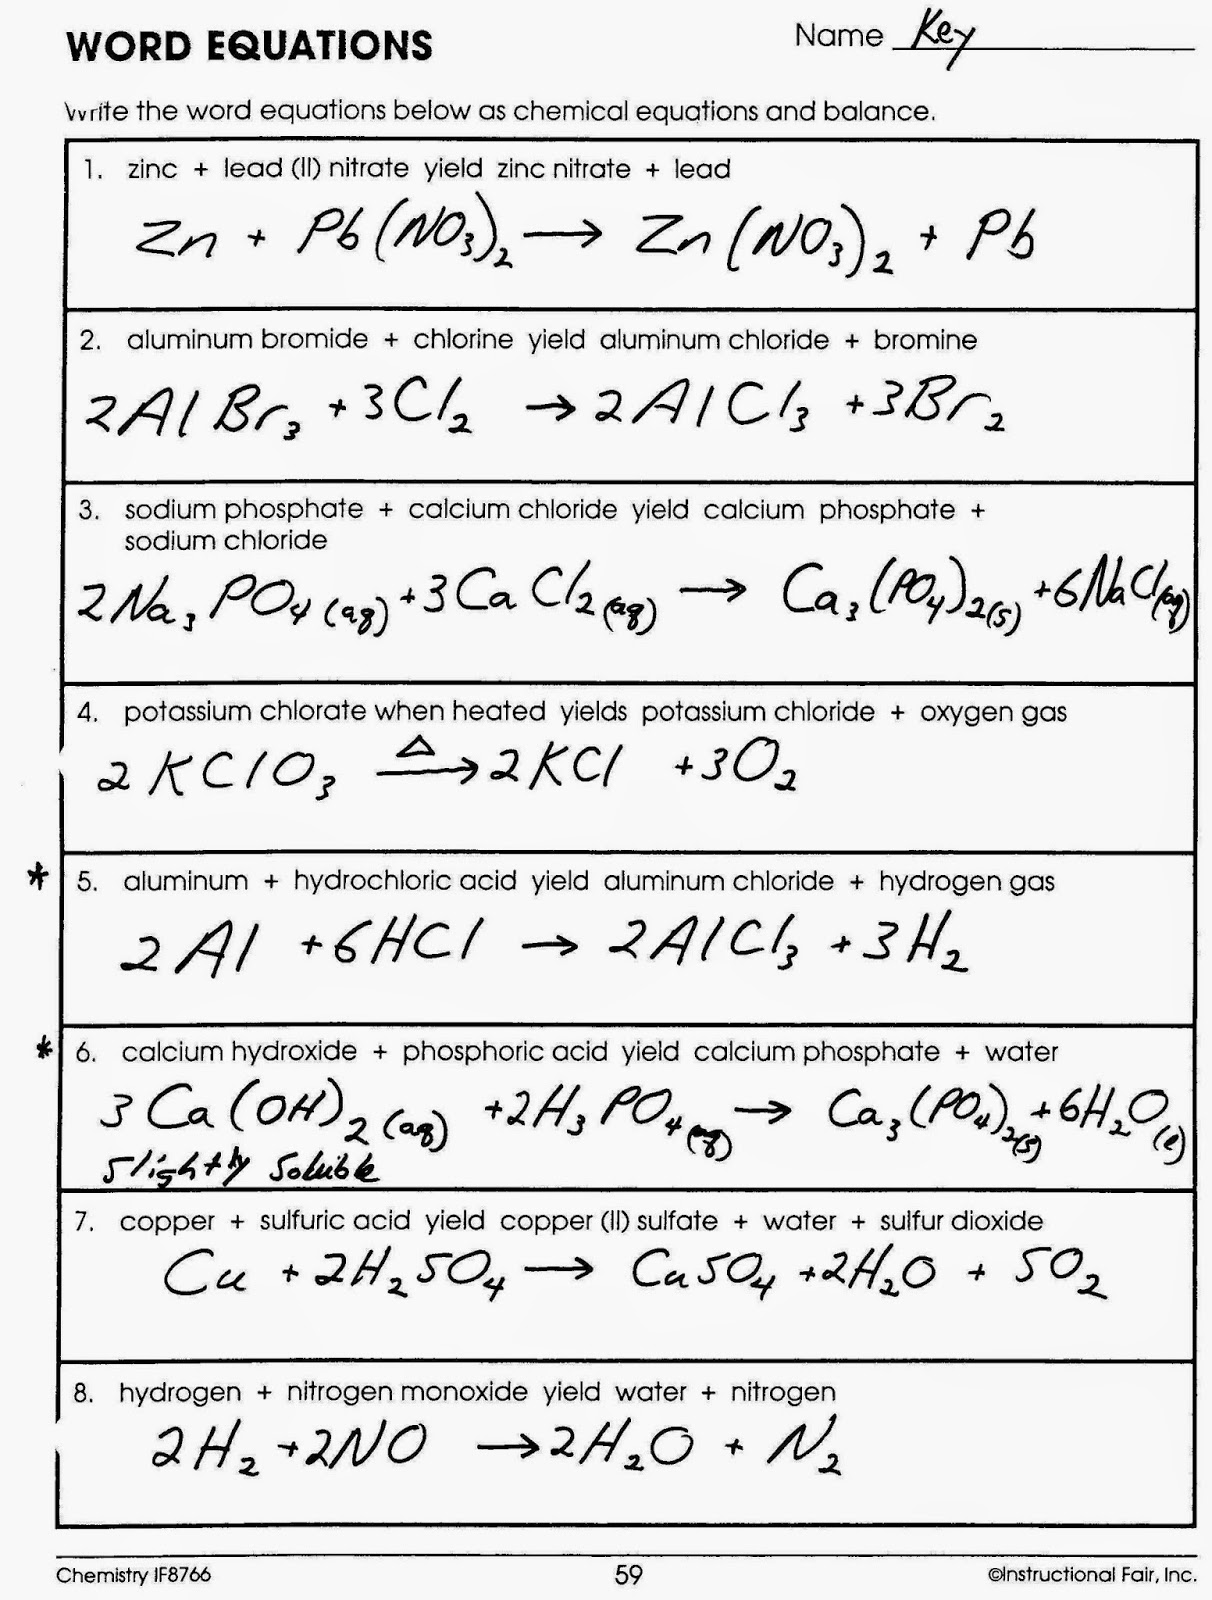 Chemistry Word Equations Worksheet Answers The Best Worksheets